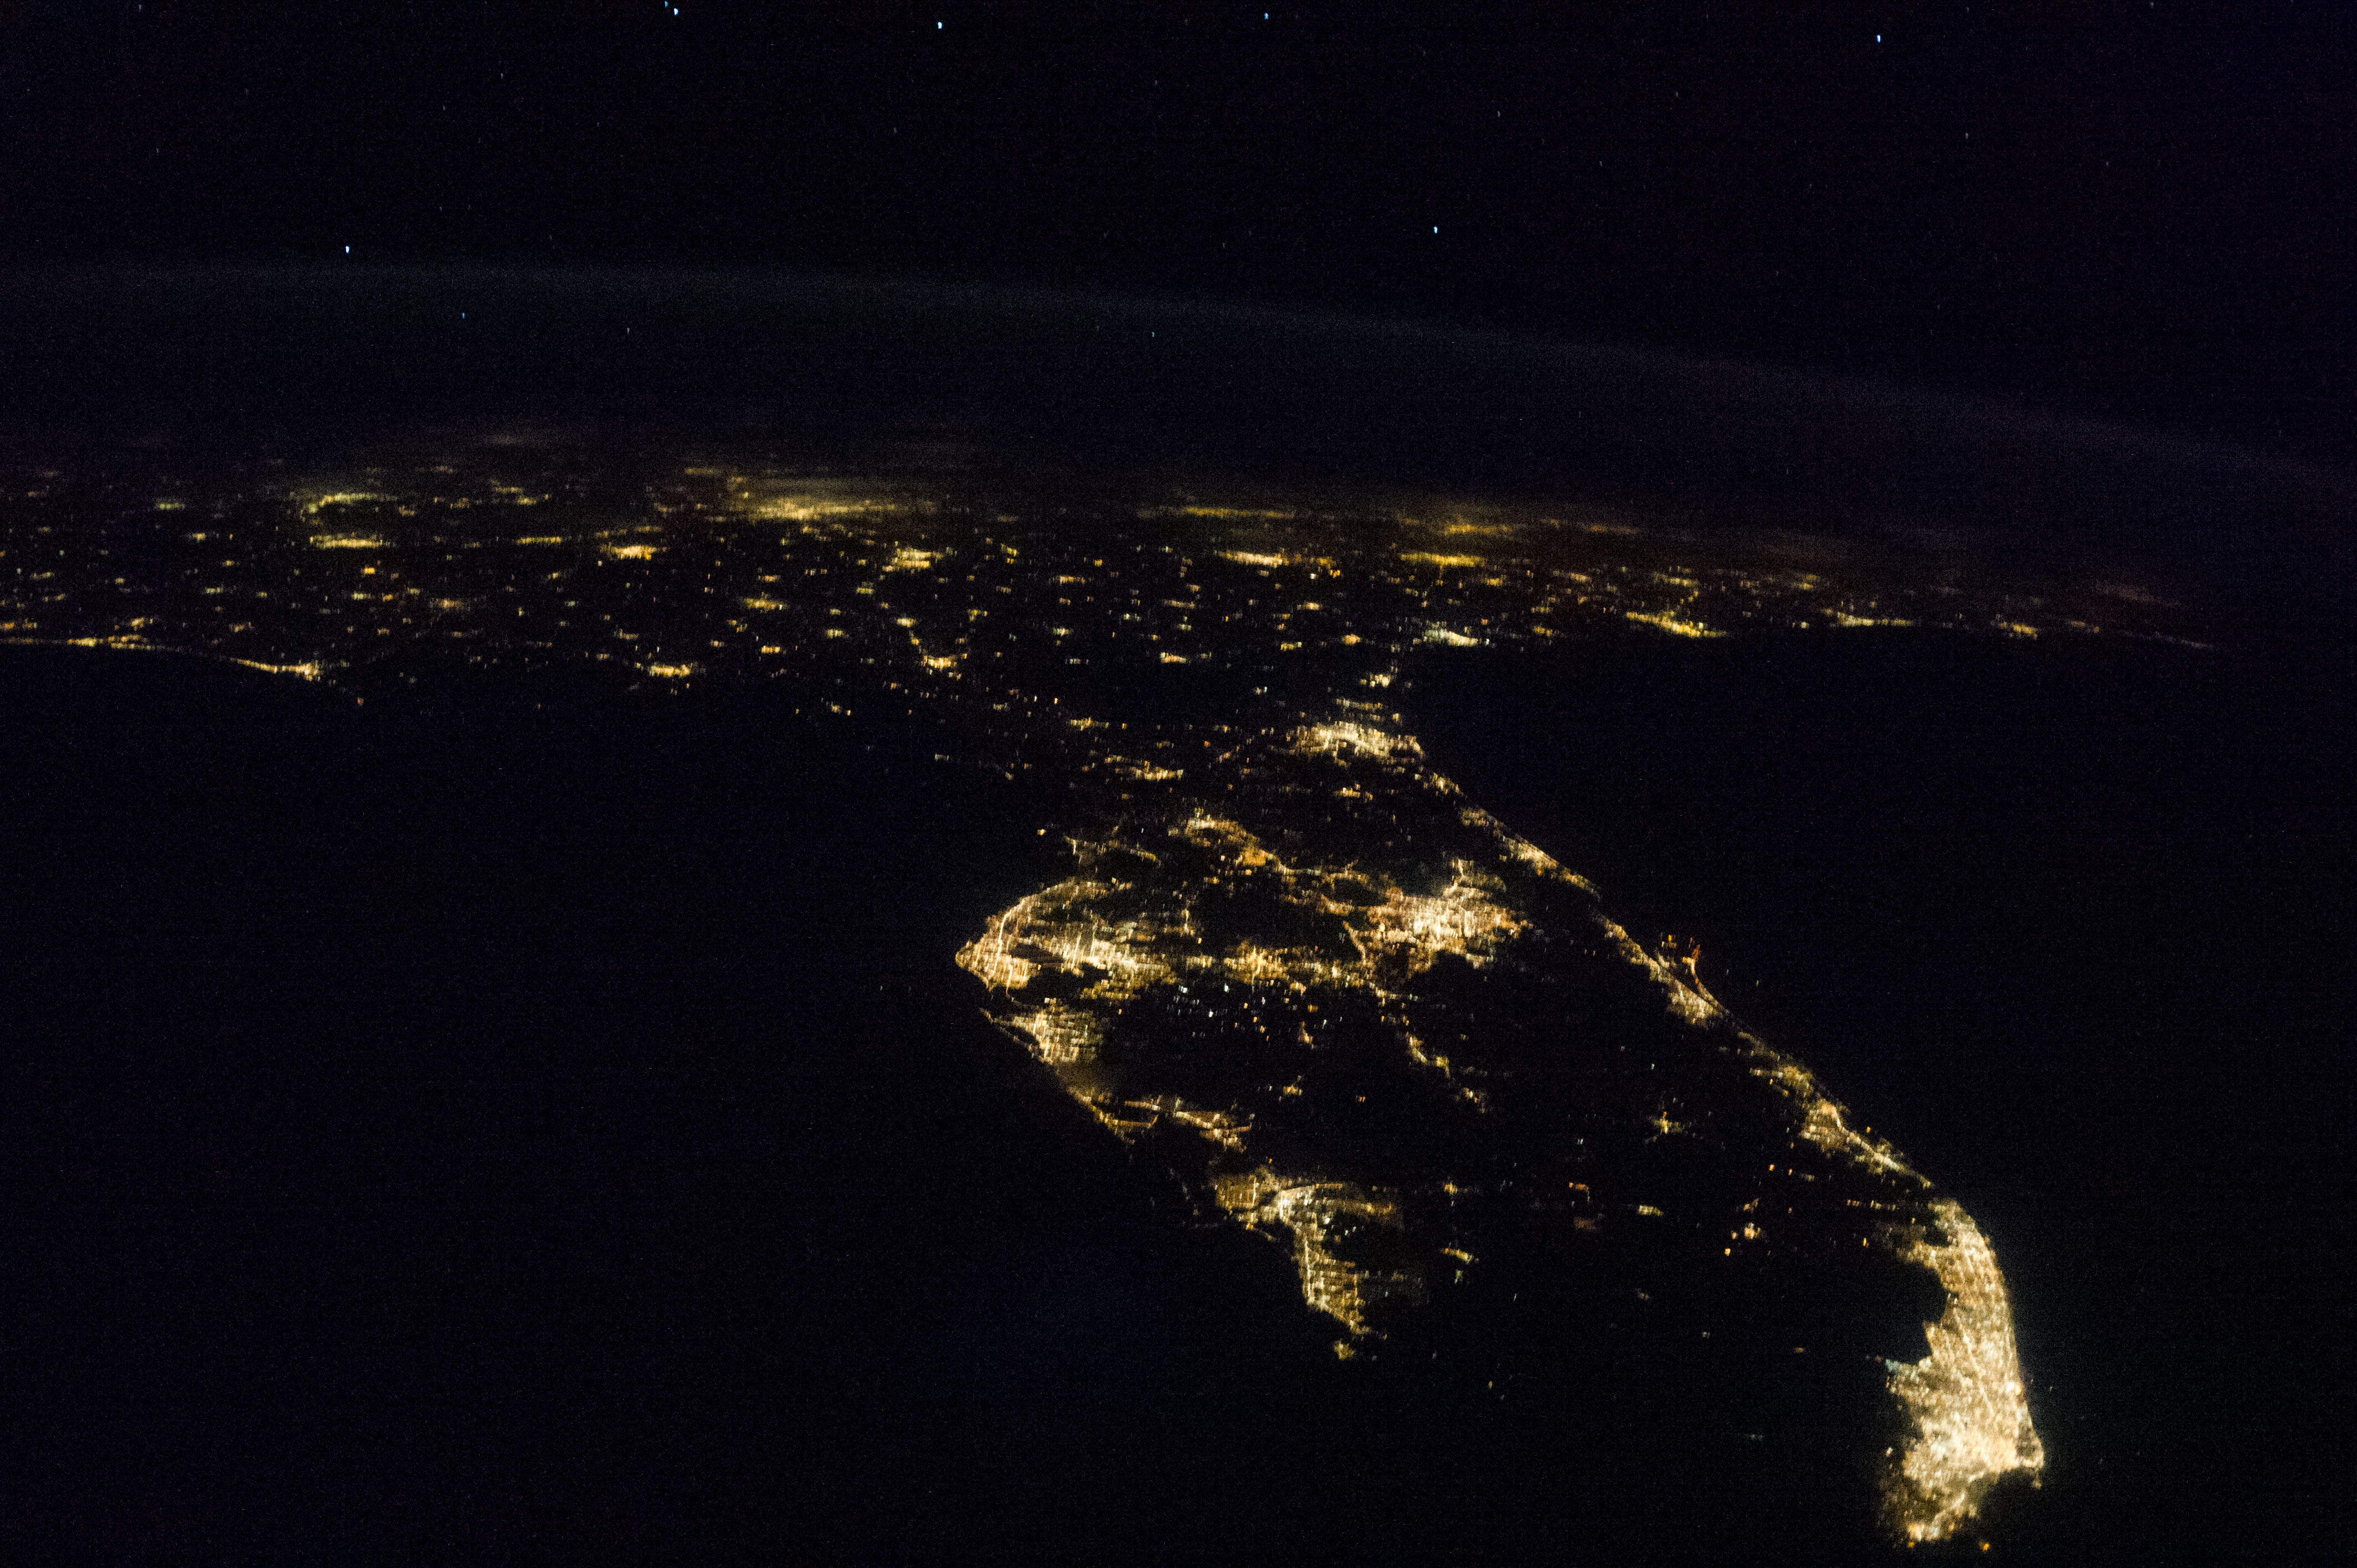 ISS-36_Nocturnal_image_of_Florida_and_pa